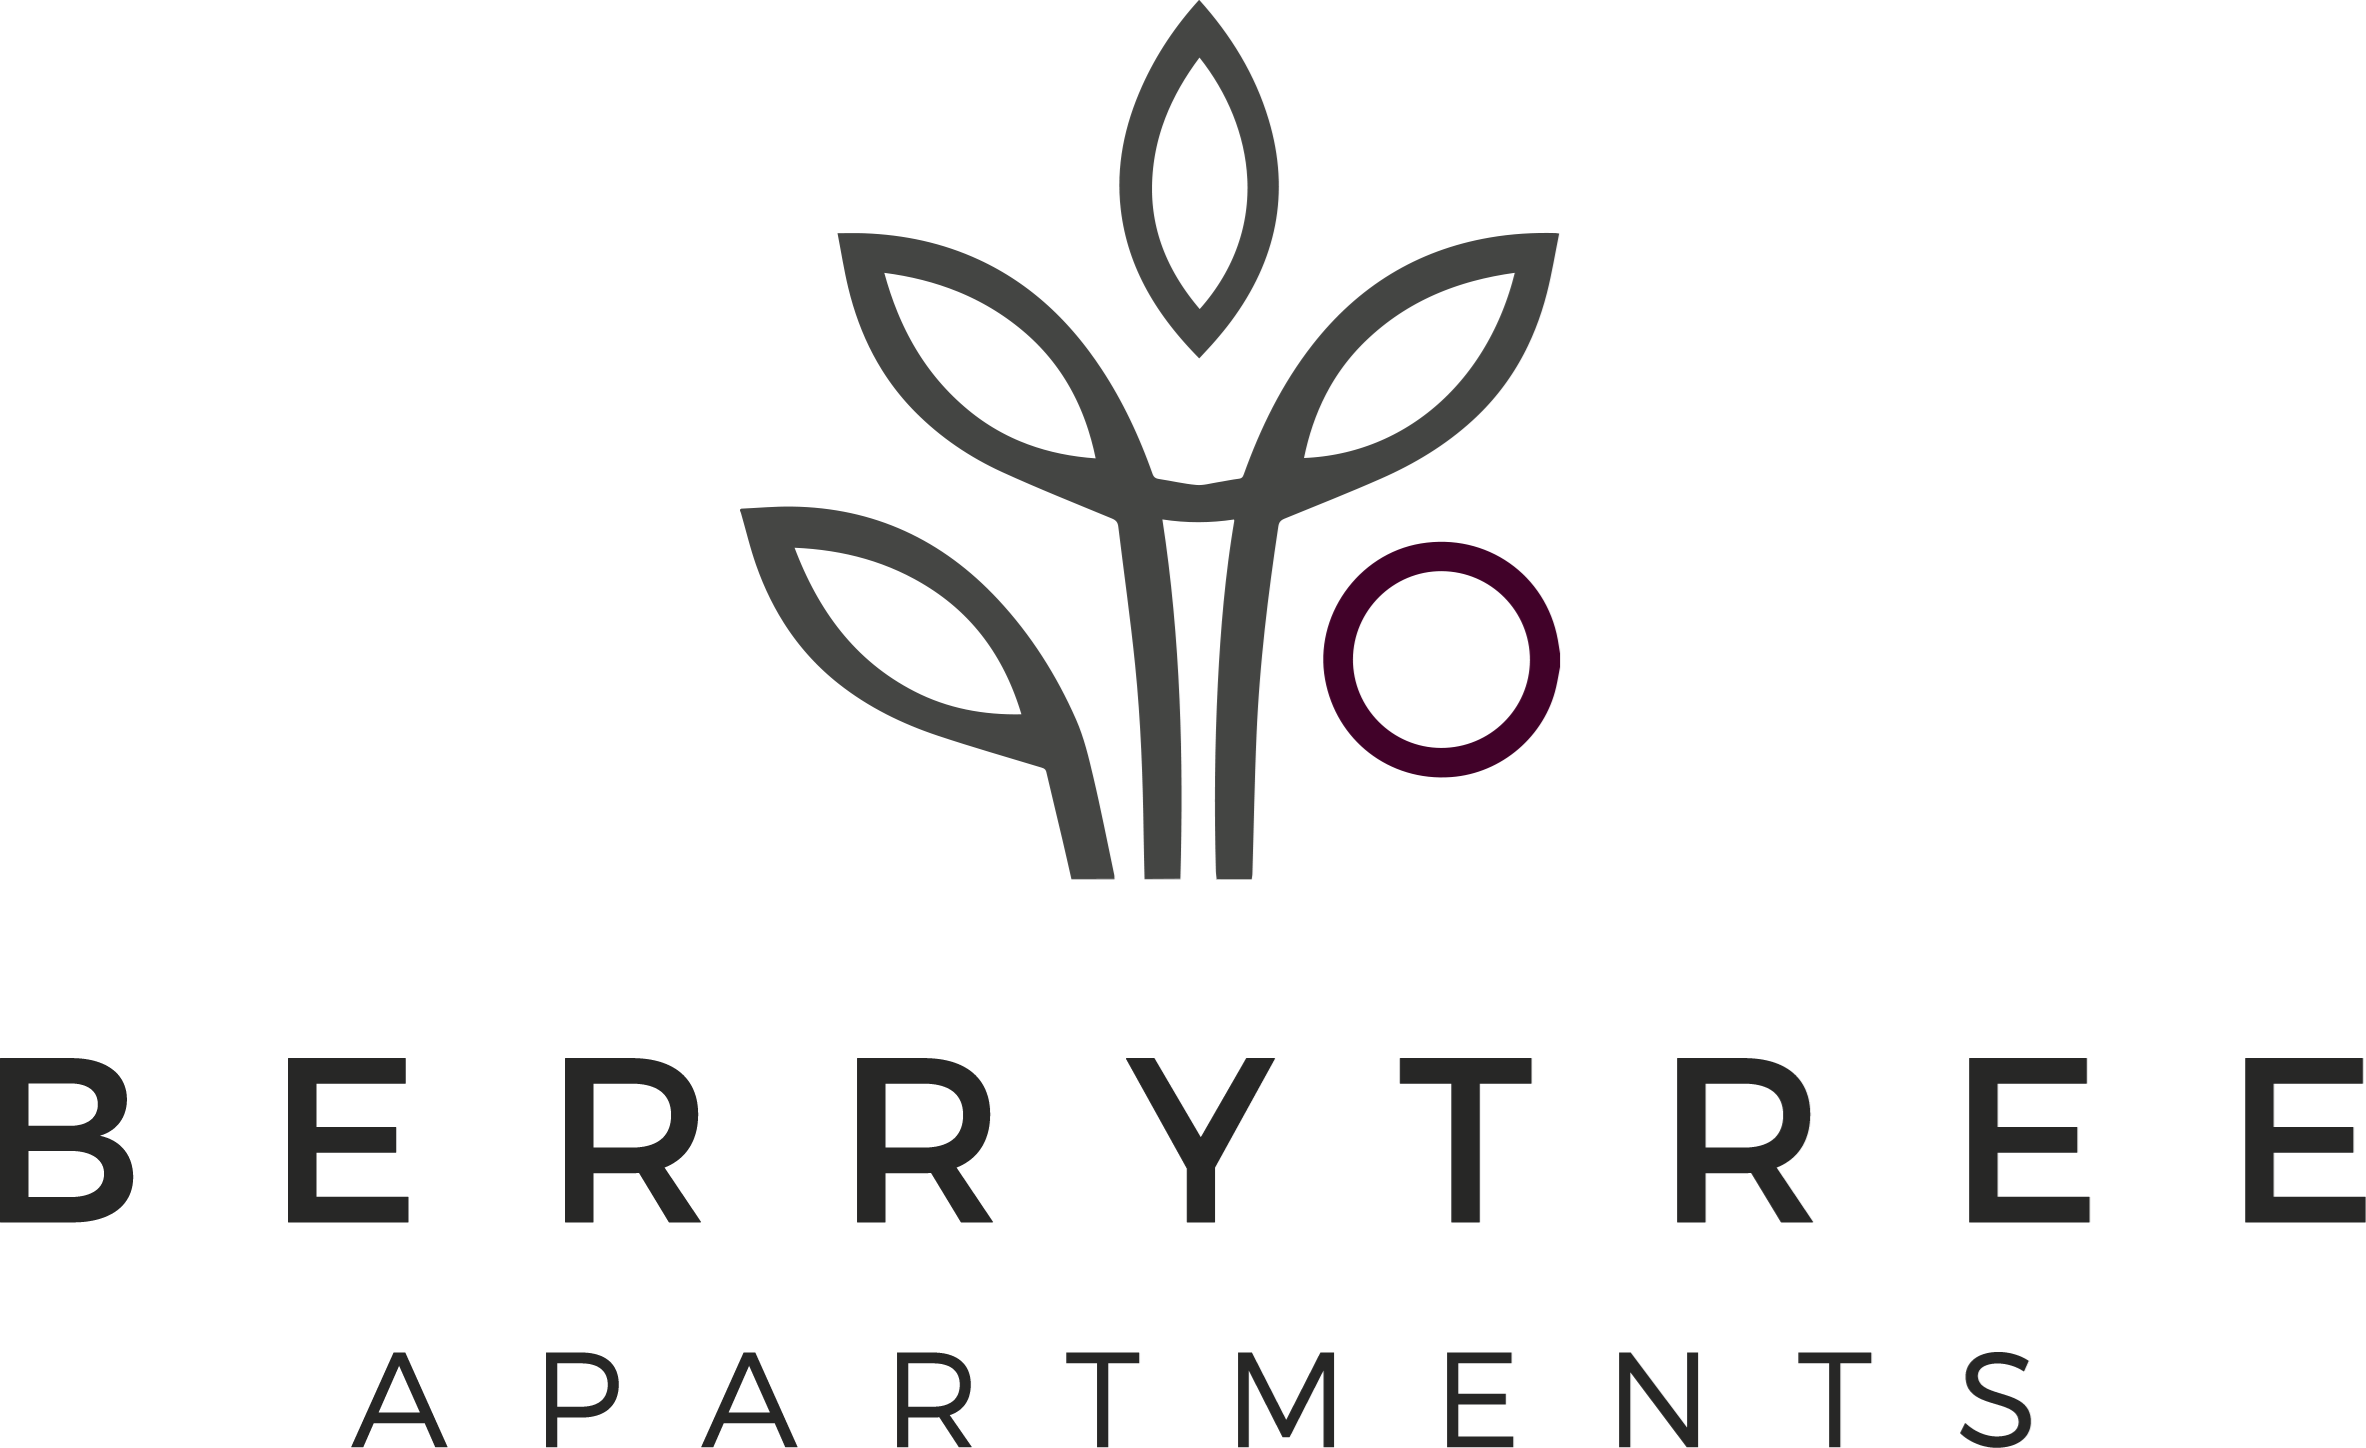 Berrytree Apartments Logo